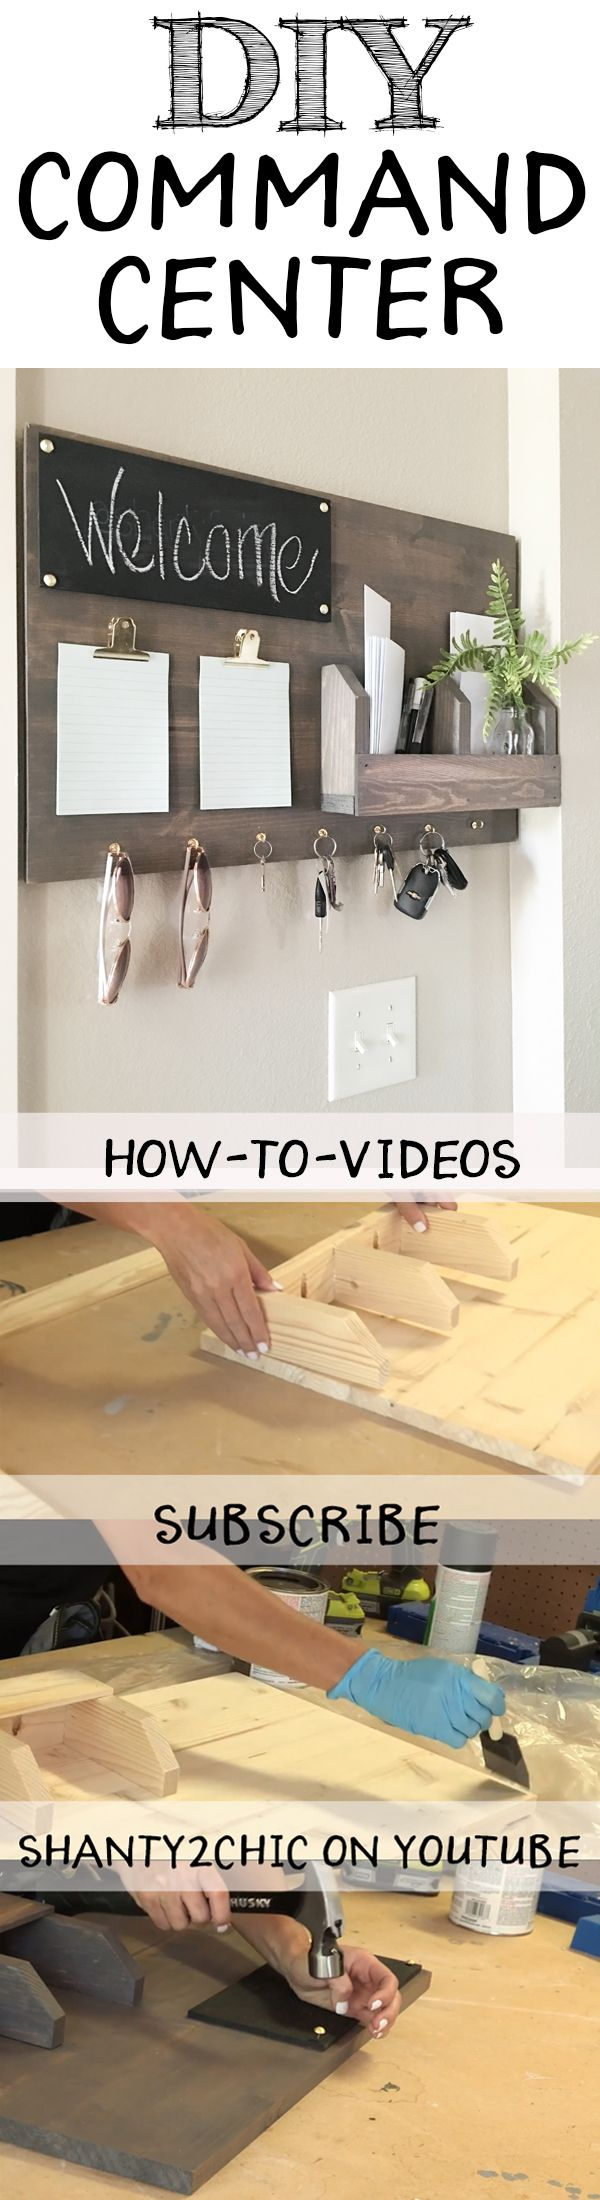 Perfect way to organize all of your